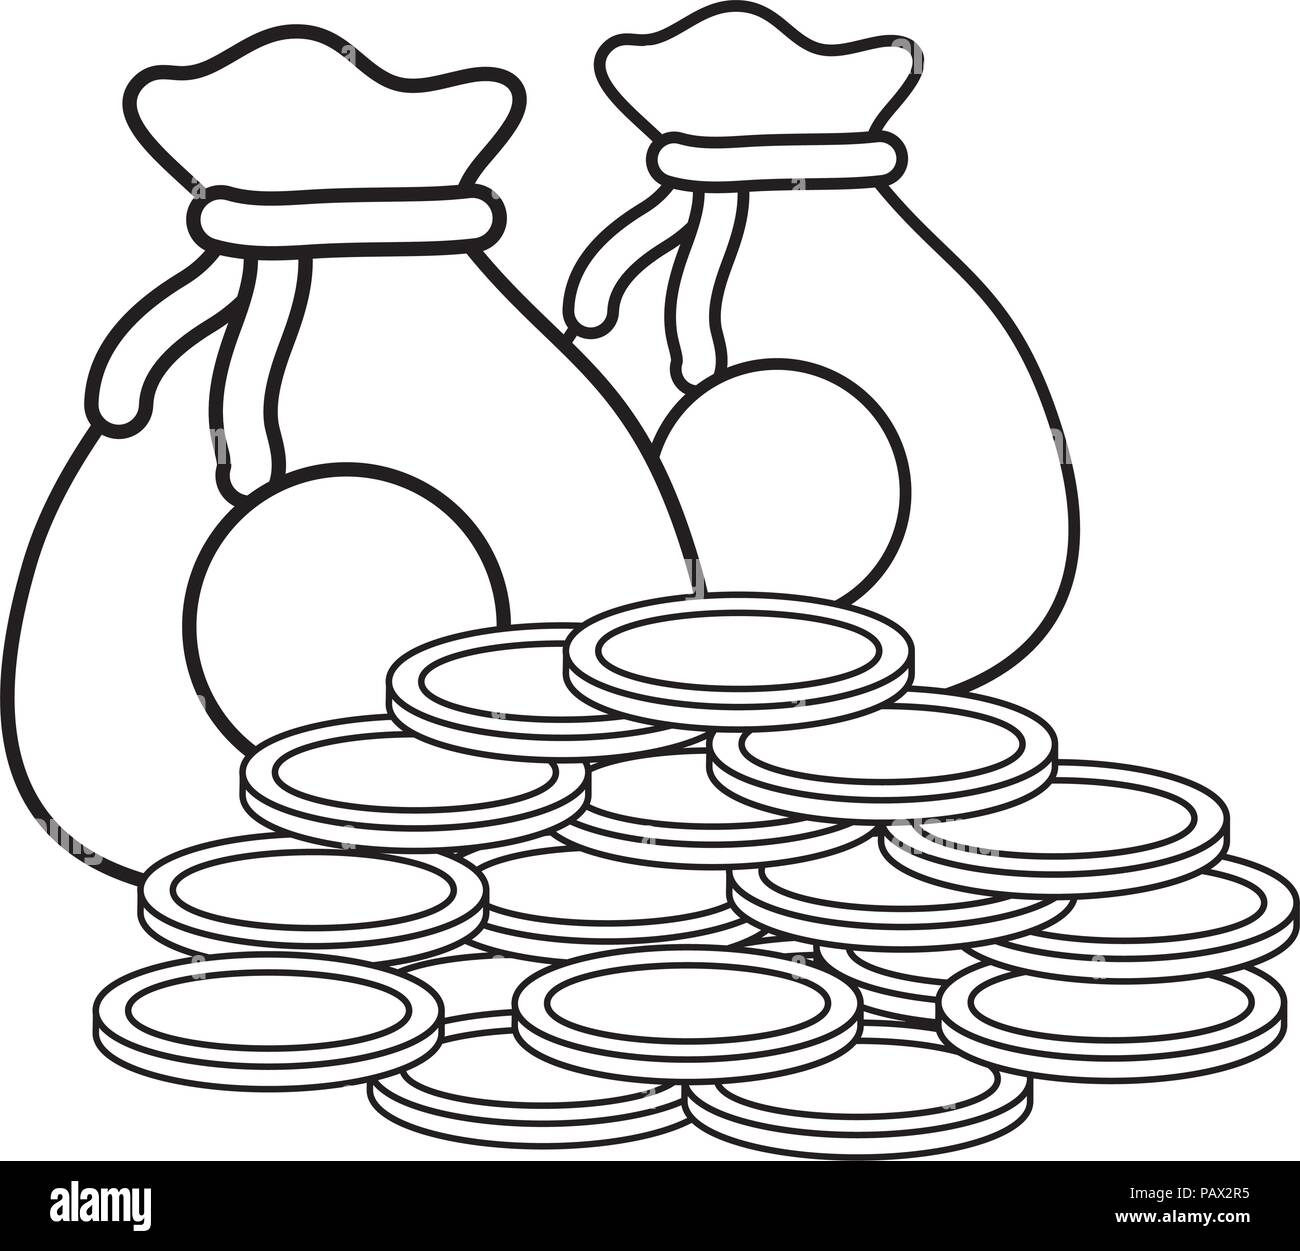 money sacks and coins  icon over white background, vector illustration - Stock Vector